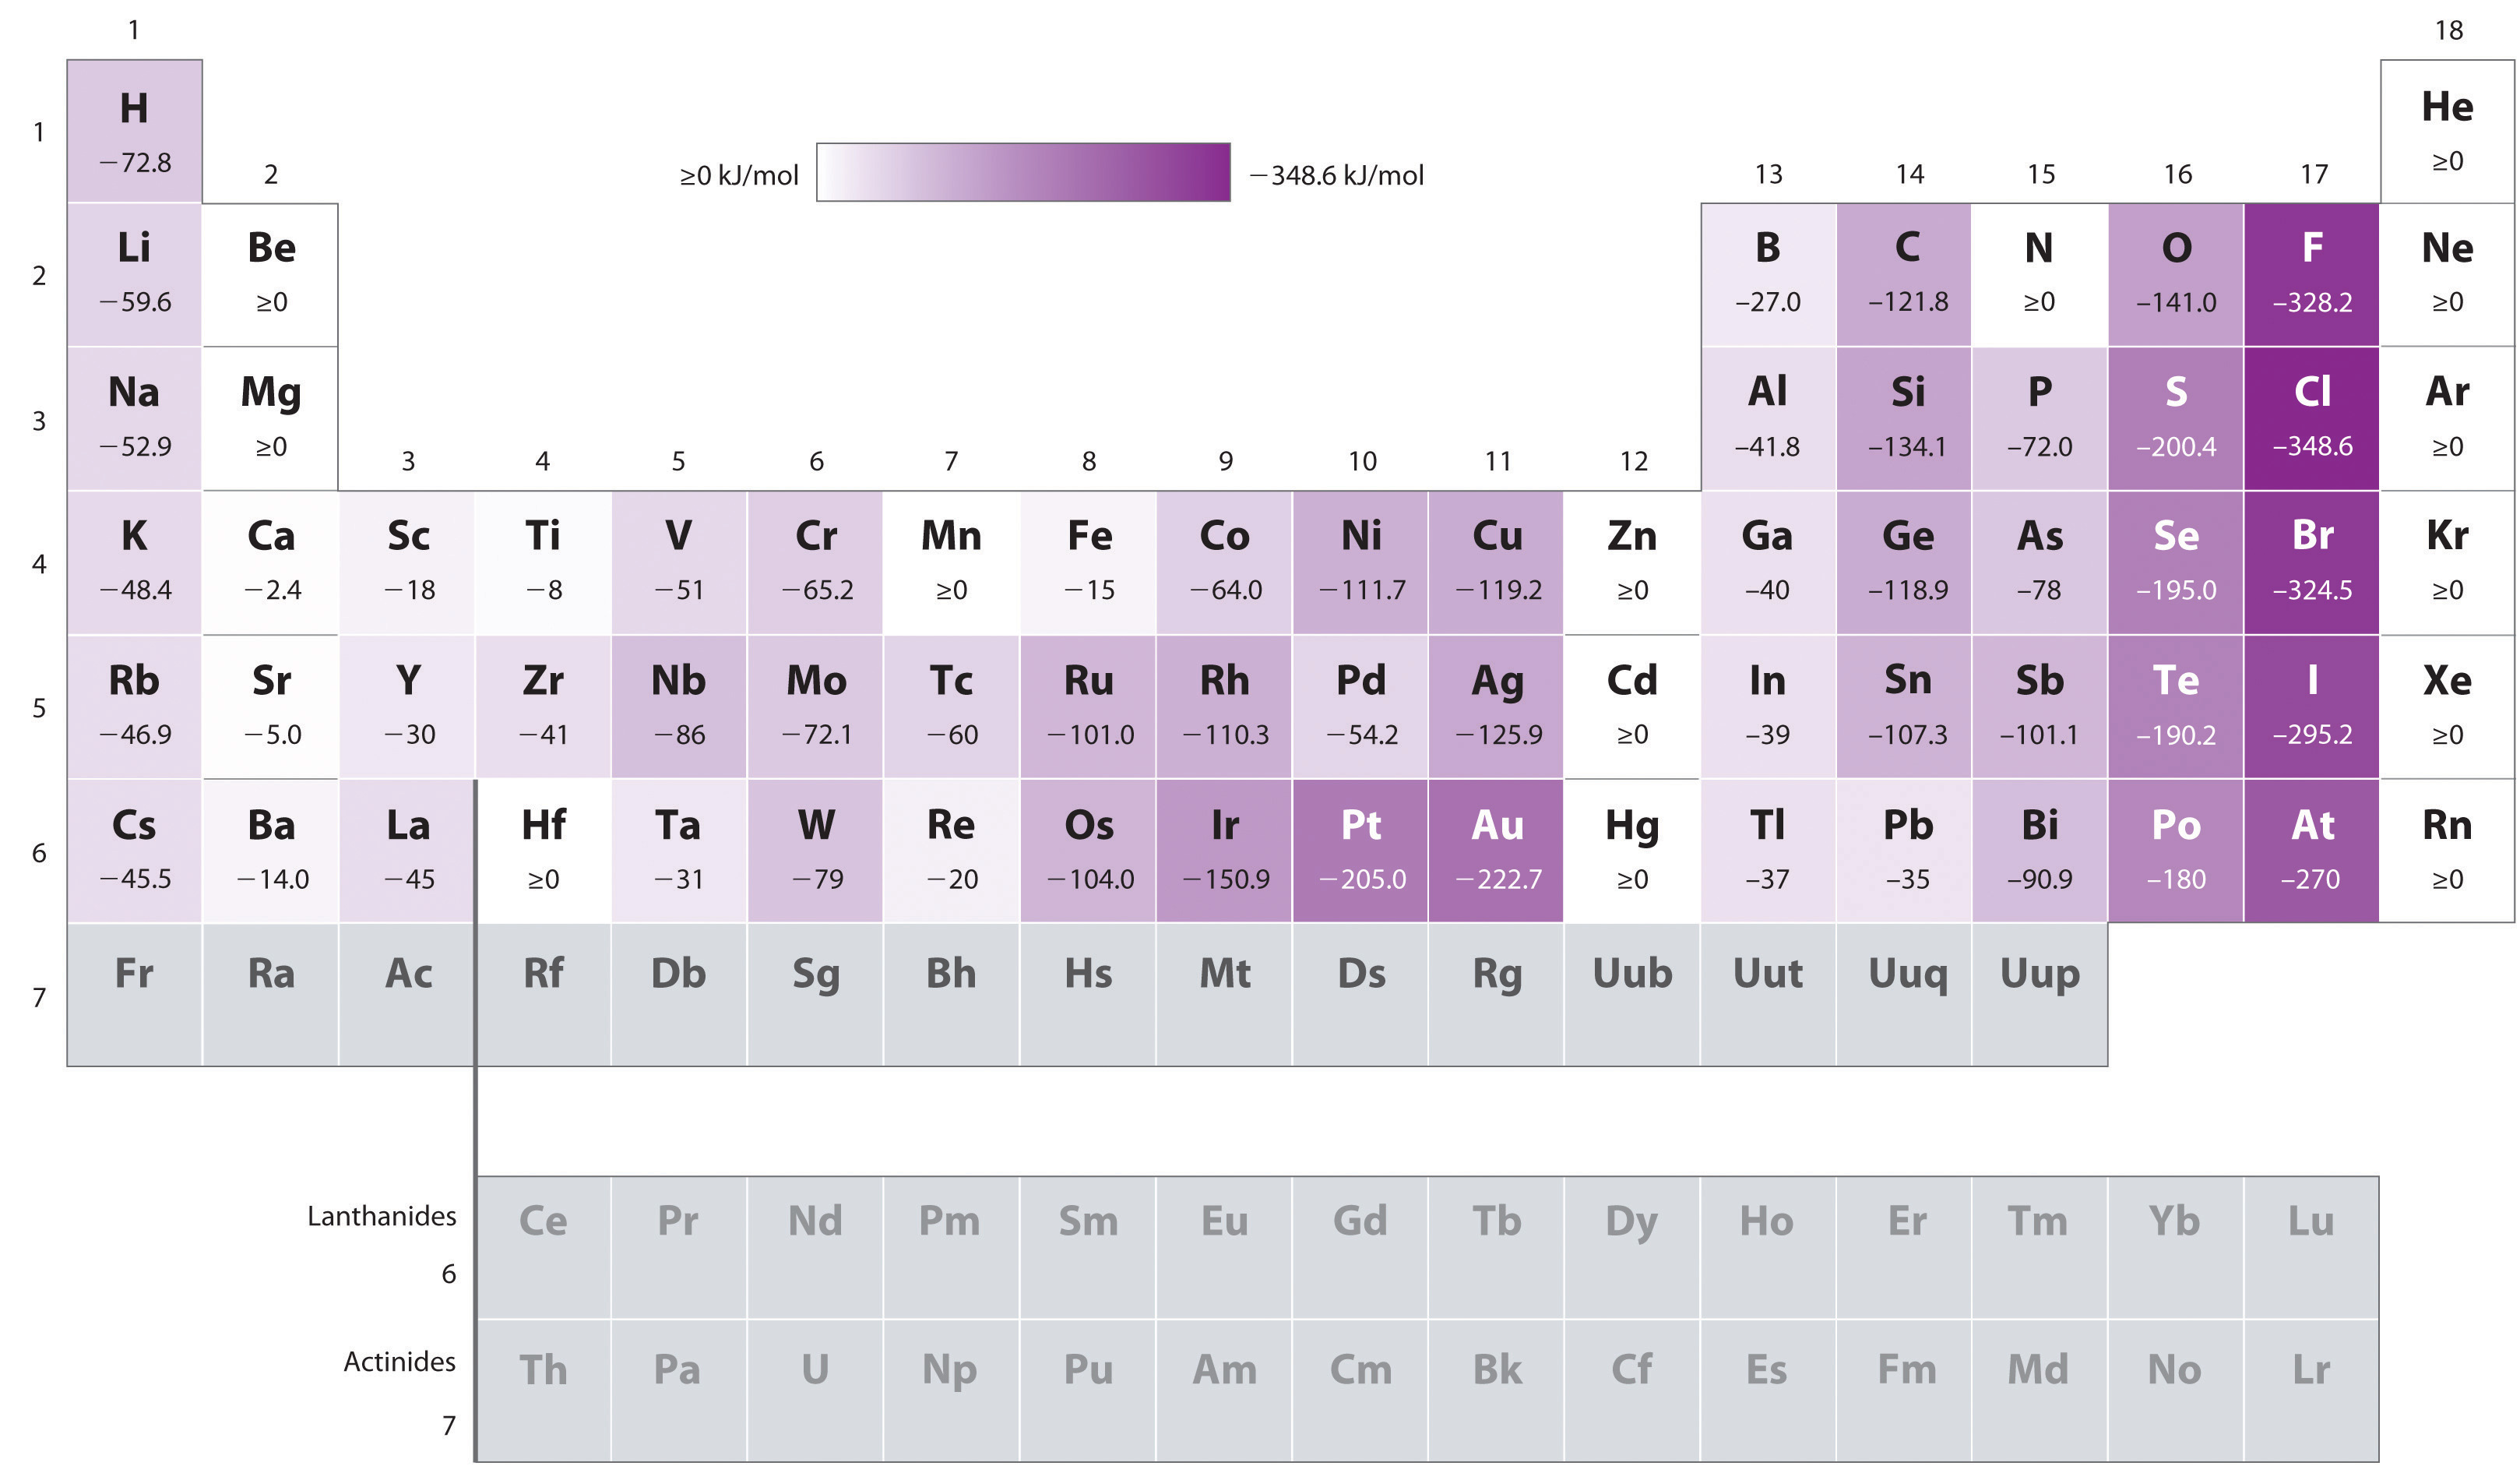 New ionic radius on the periodic table periodic periodic trends periodic ionic on table the radius ionic radius table 18 periodic for images displaying gamestrikefo Image collections